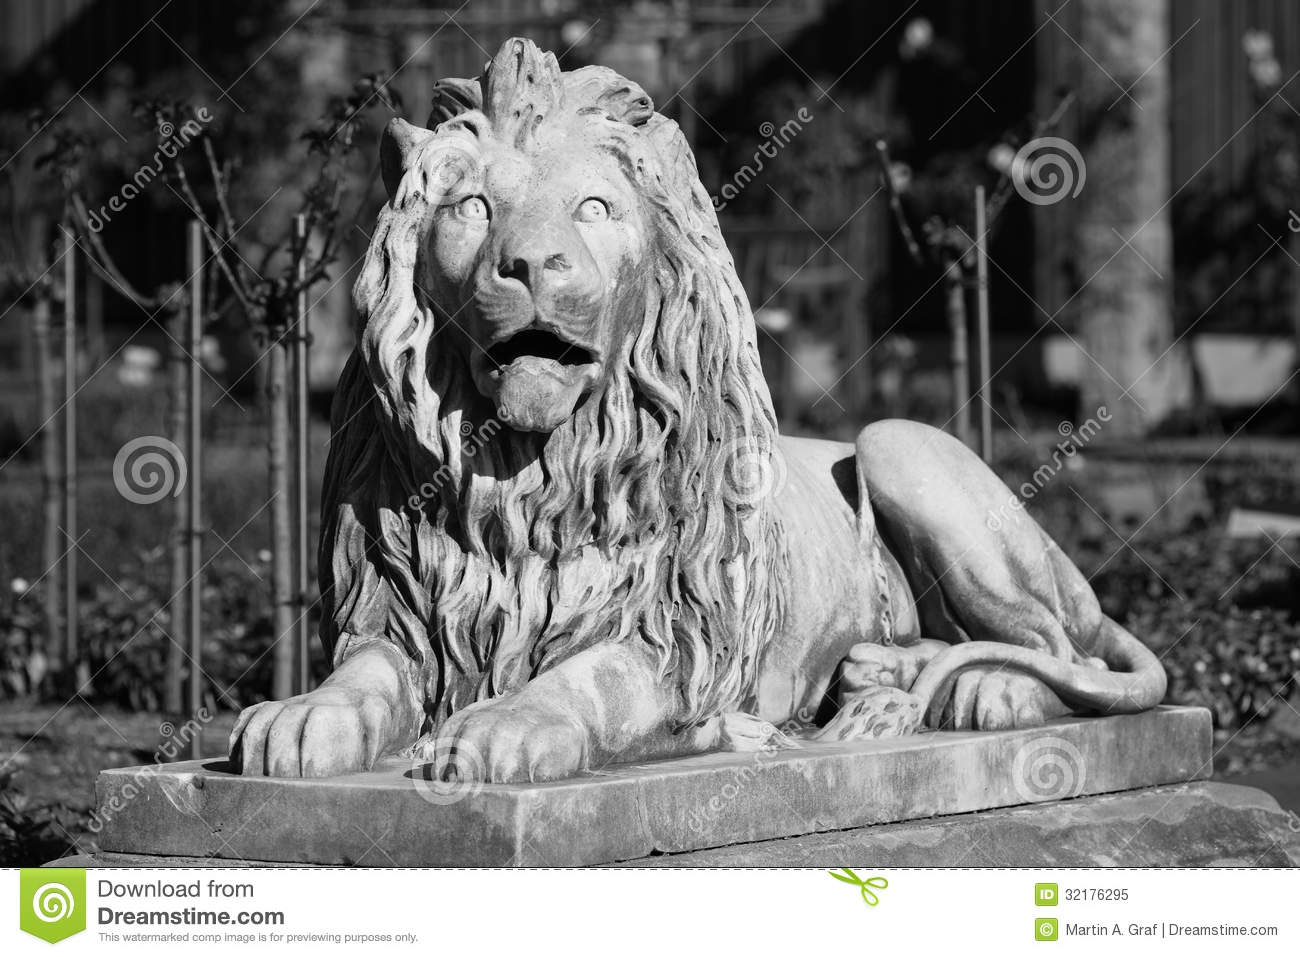 Black and white photography of a lion sculpture made of stone decorative in the royal botanic garden of sydney australia